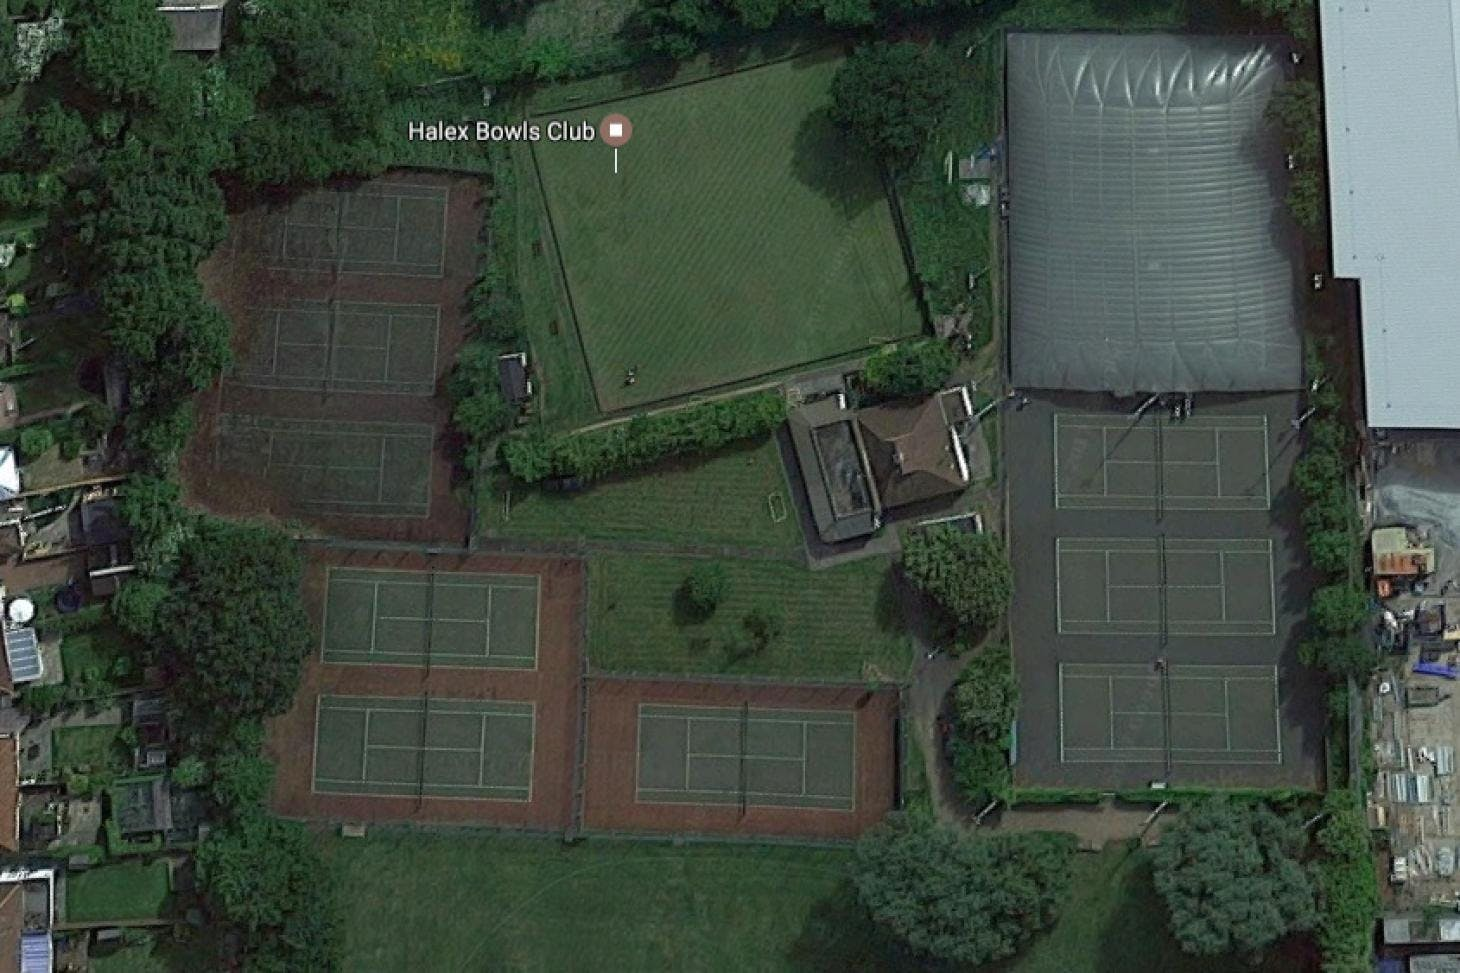 Chingford School of Tennis  Outdoor | Hard (macadam) tennis court